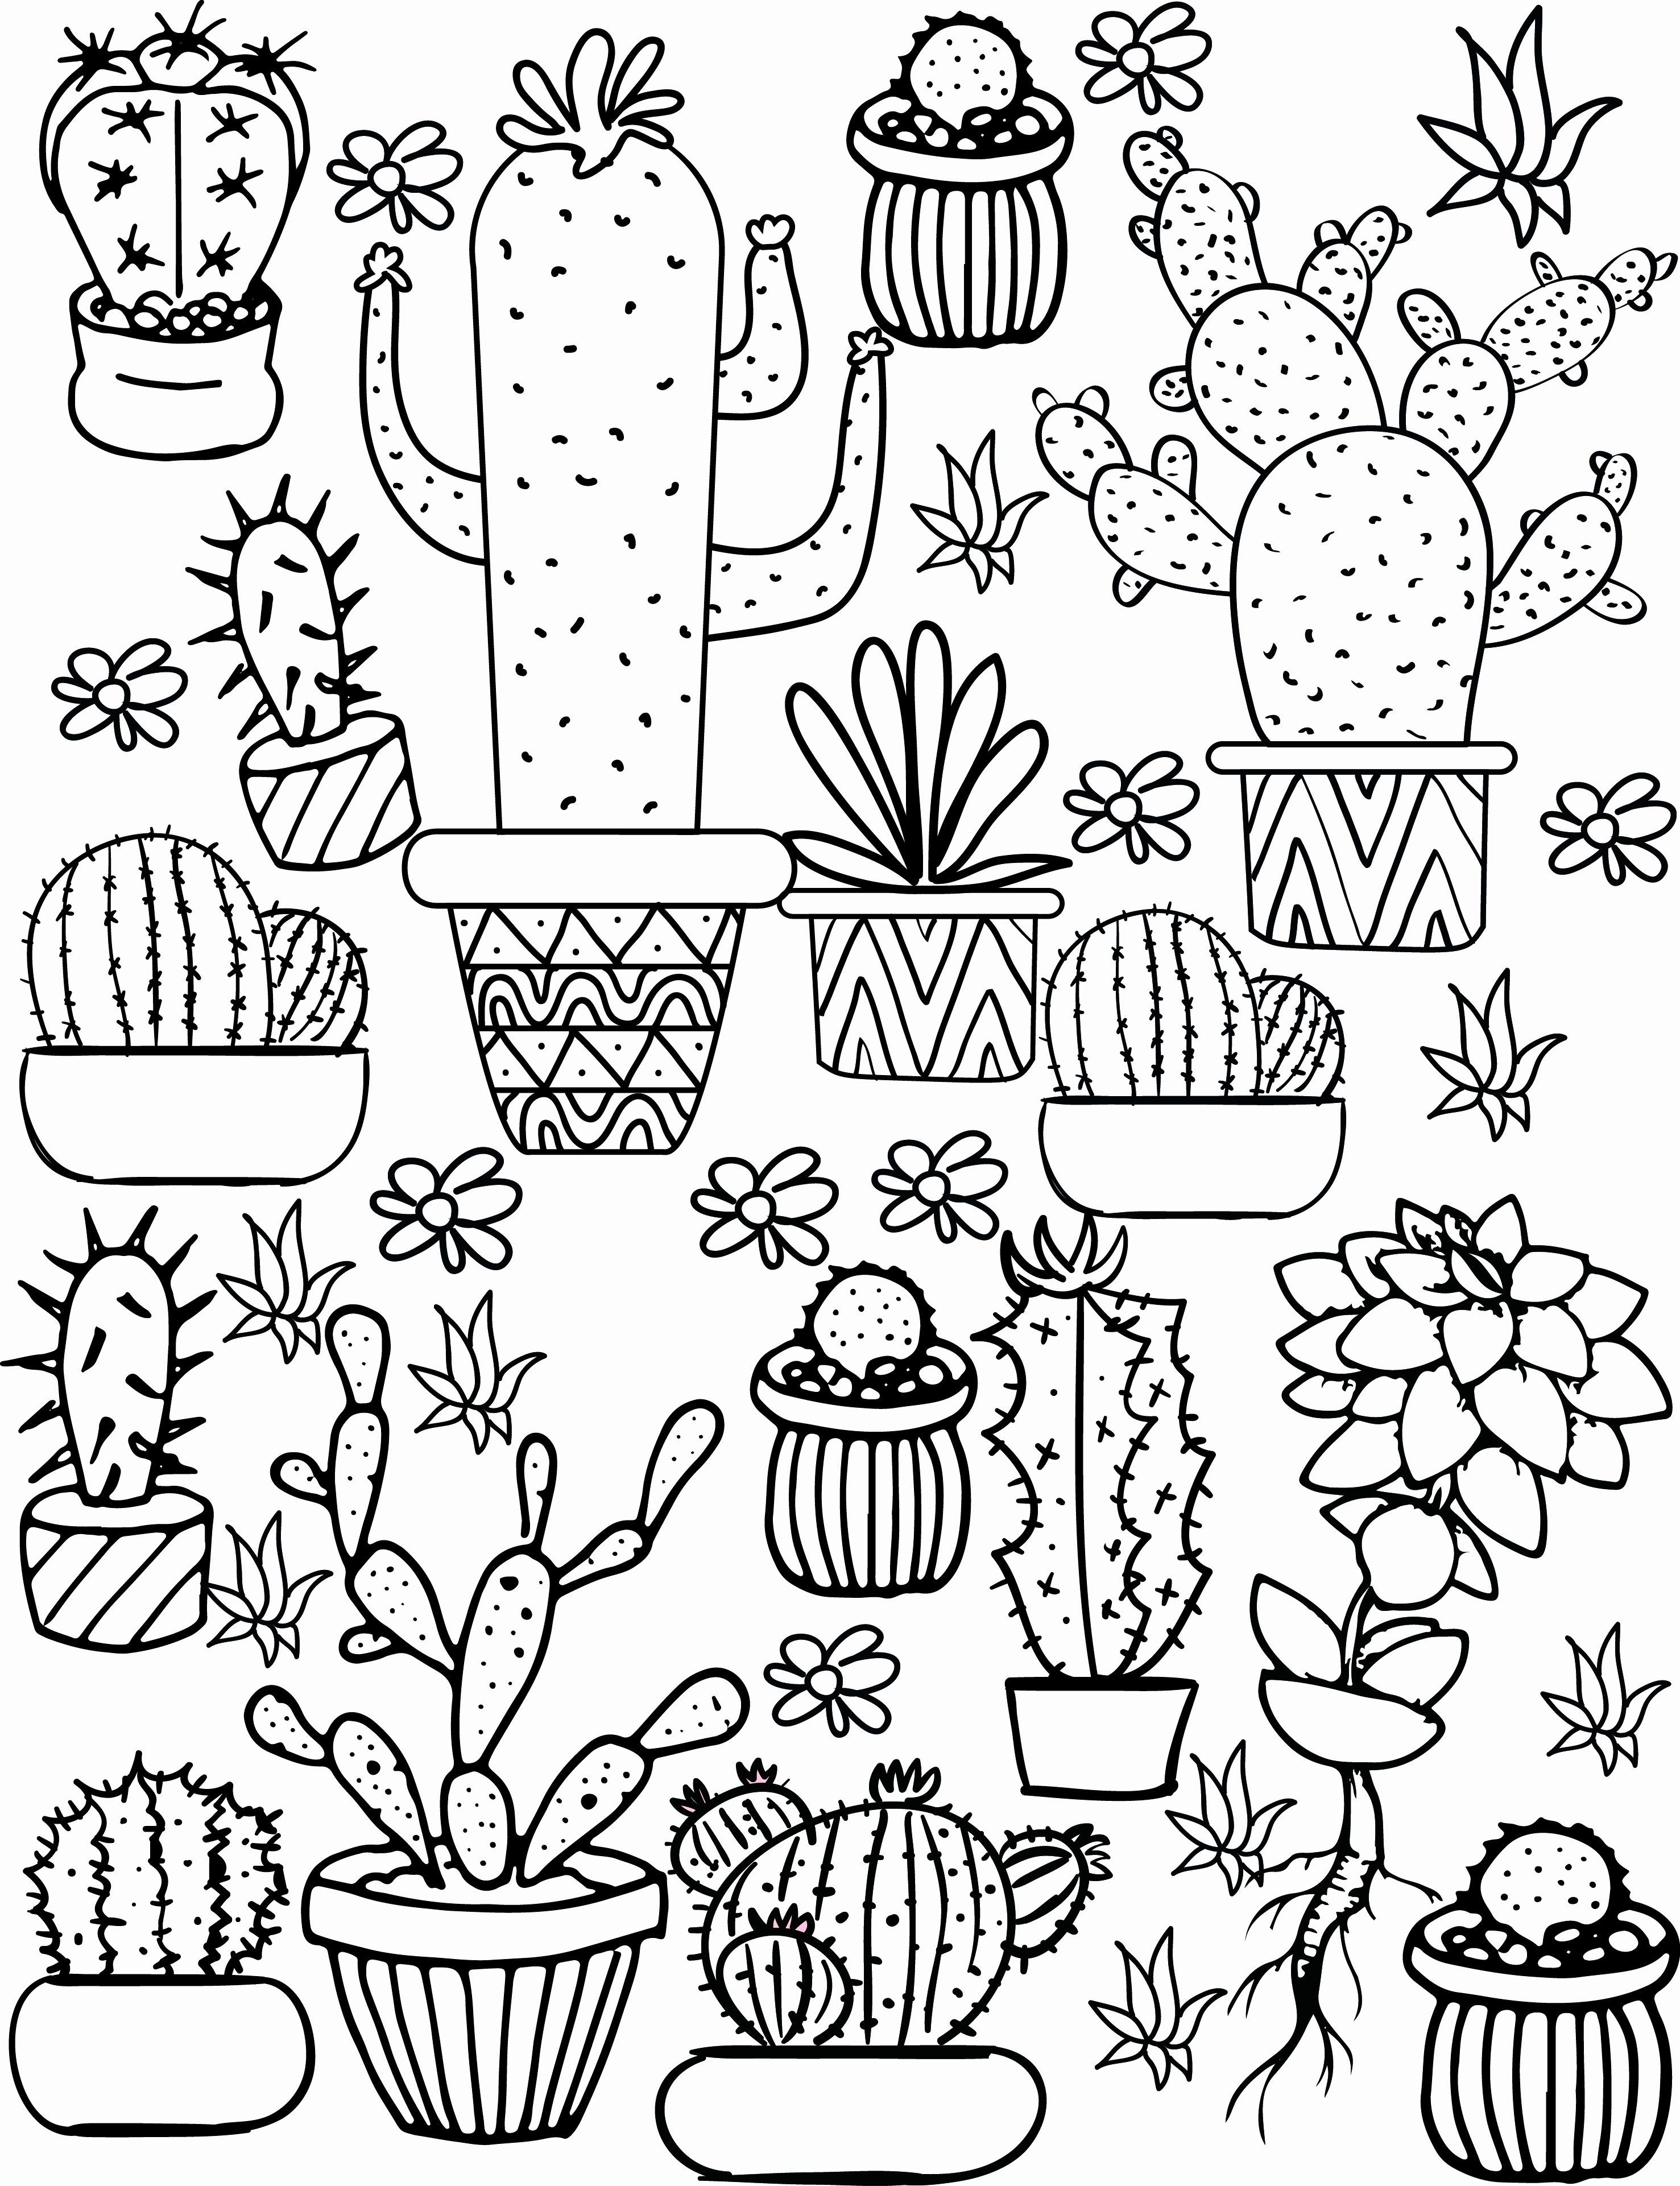 Yoga Coloring Pages To Print Unique Free Printable Yoga Coloring Pages Cute Coloring Pages Sunflower Coloring Pages Succulent Printable